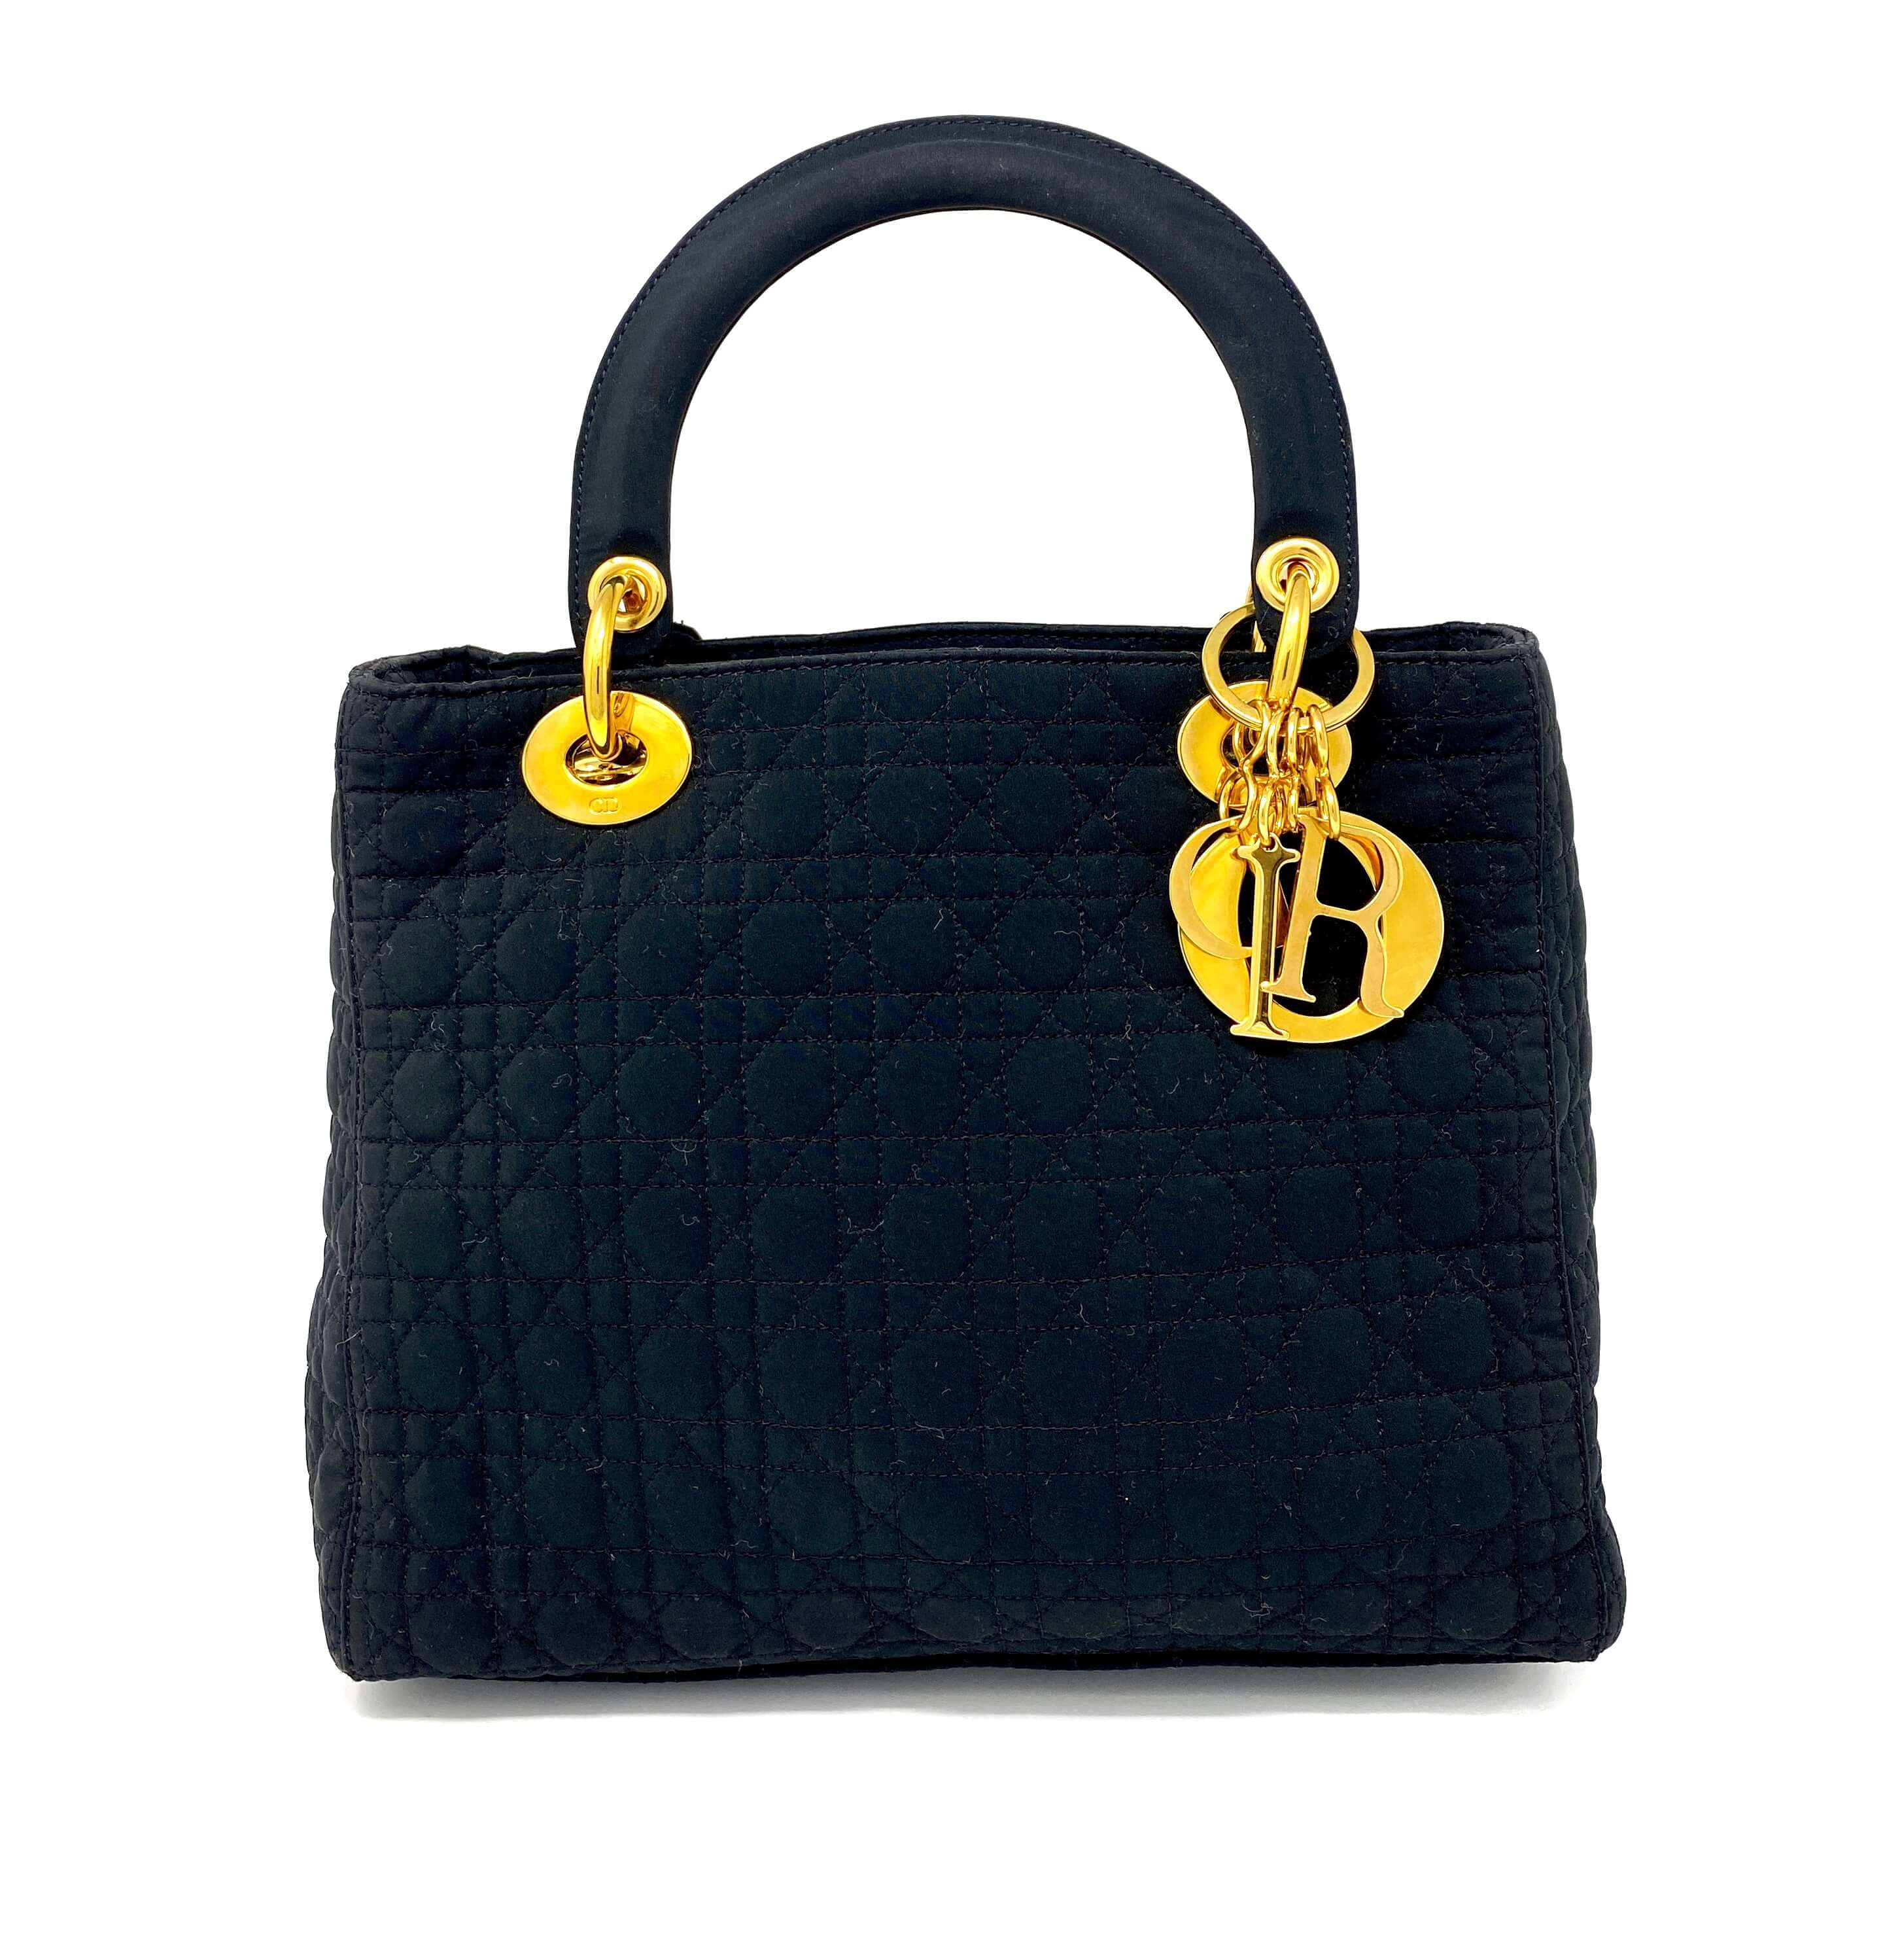 lady dior bag, black canvas, with Dior charms in gold.